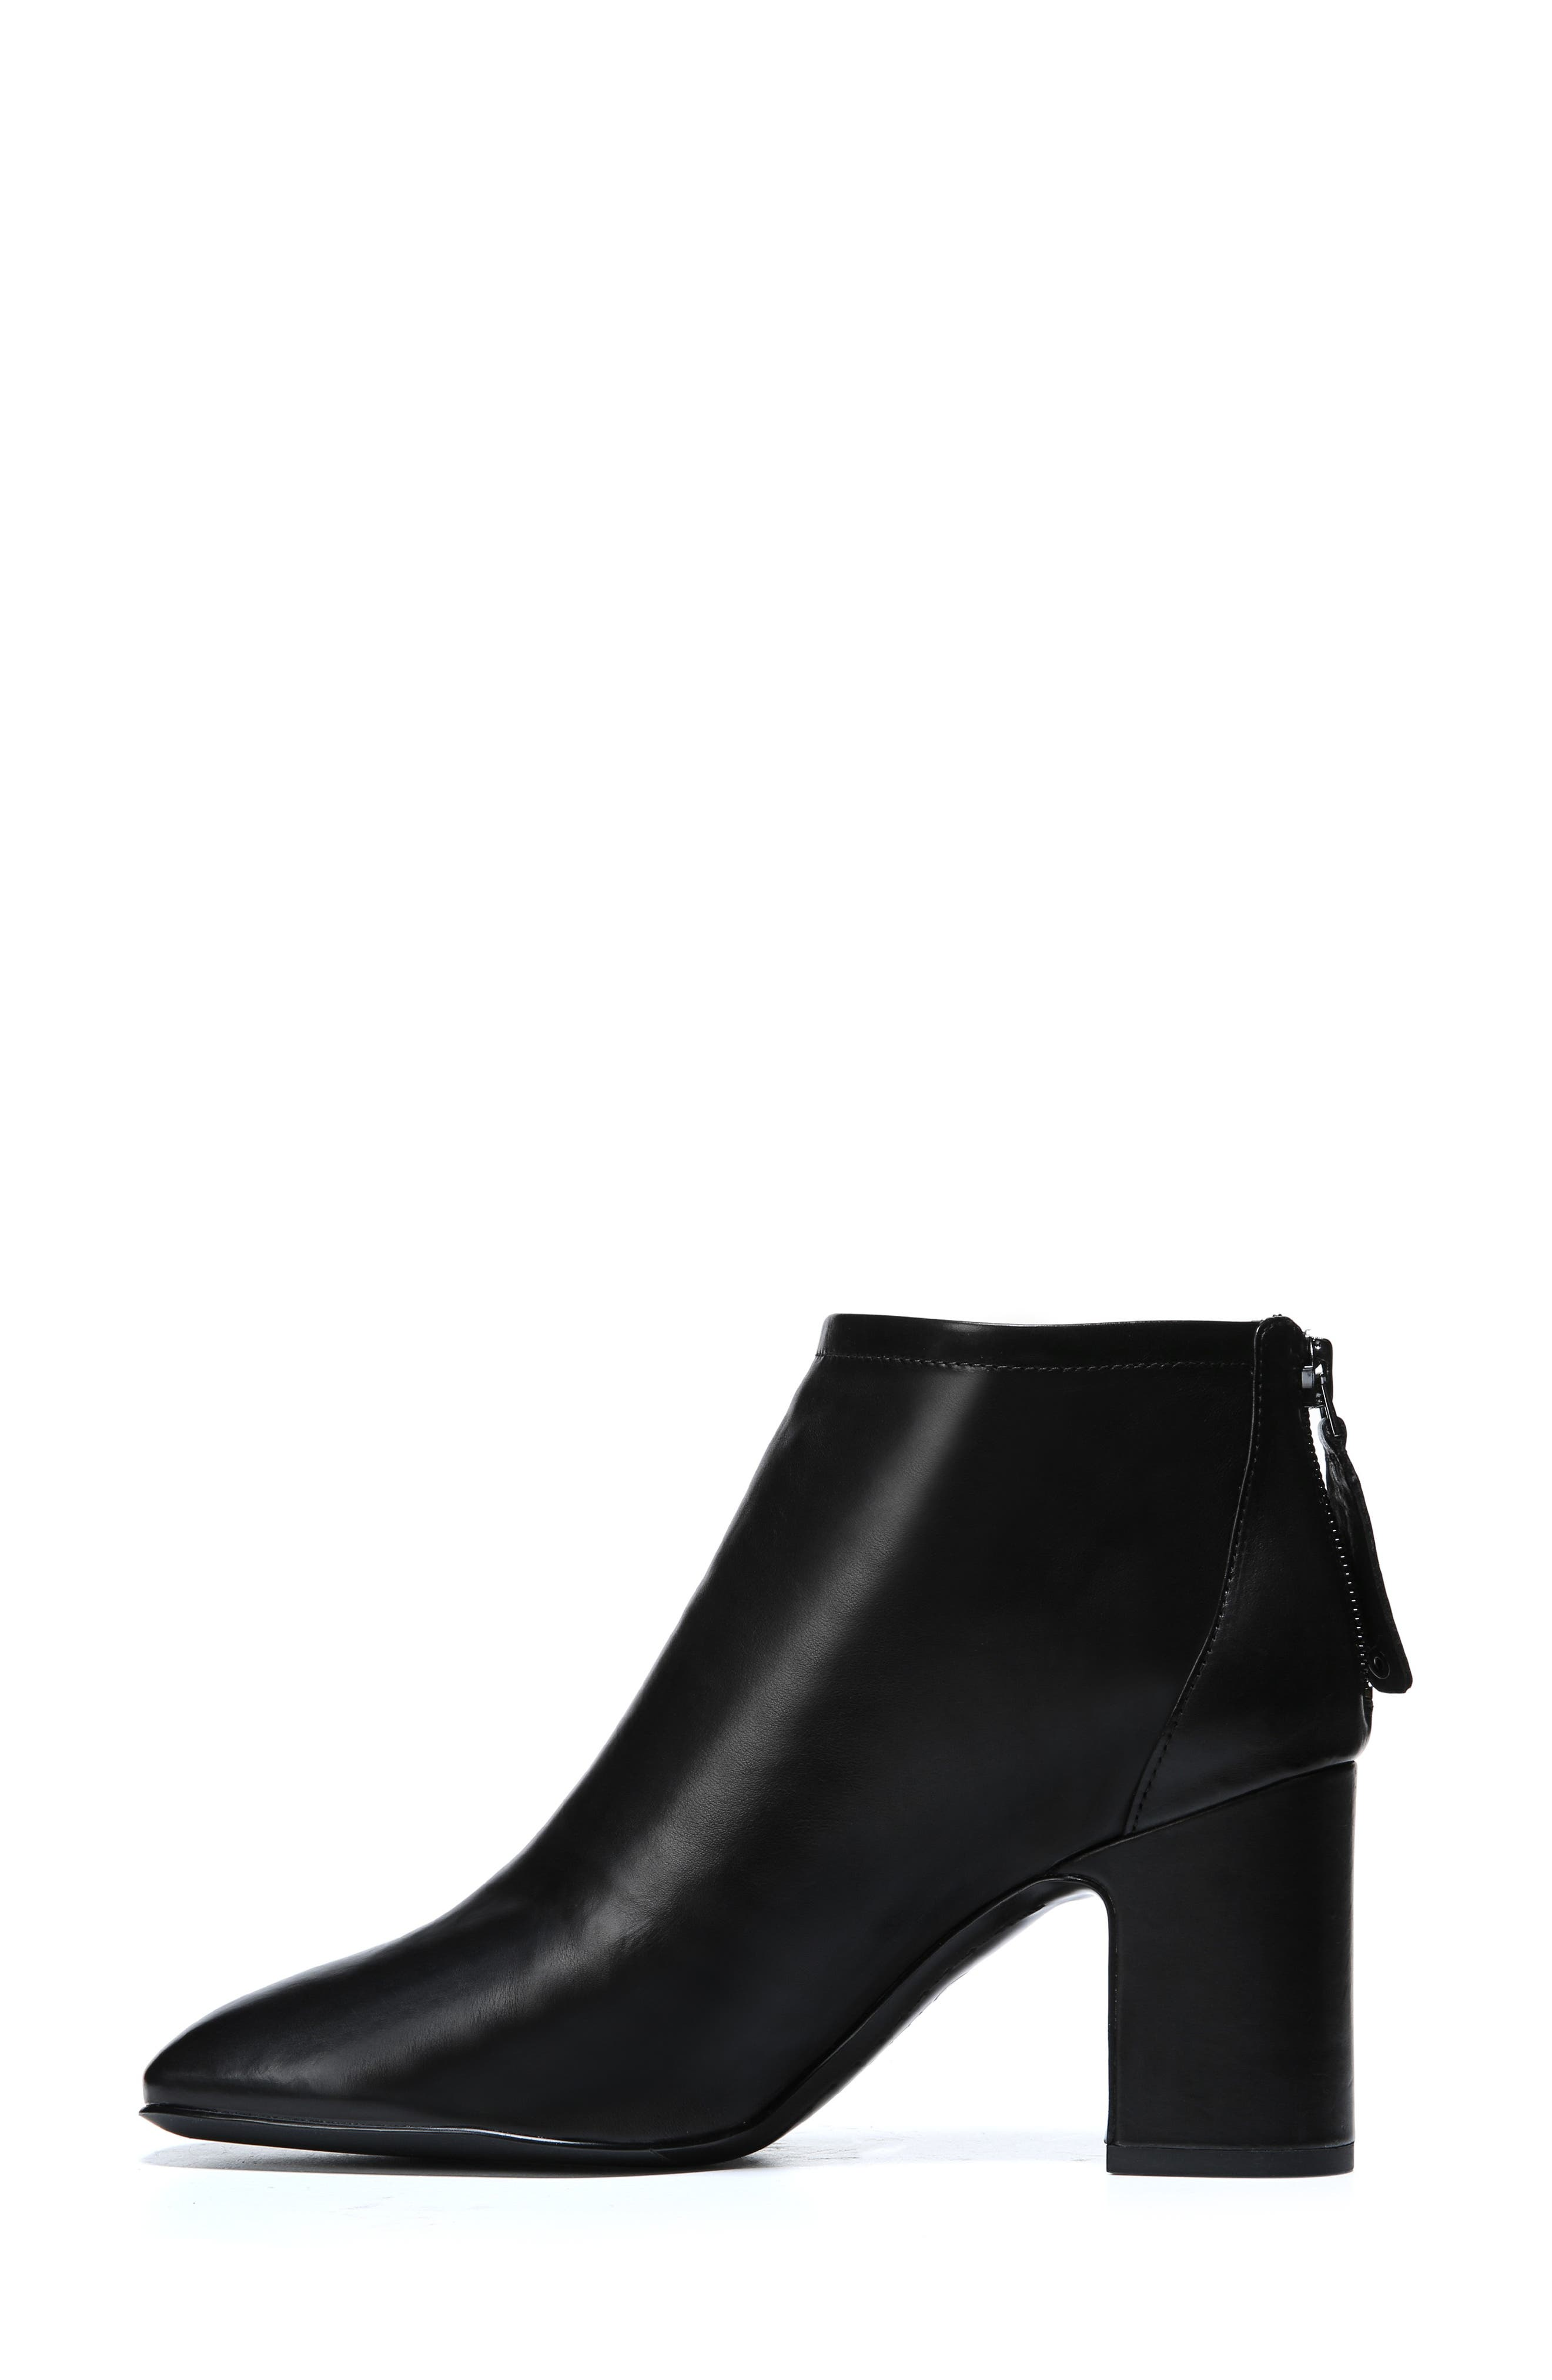 Jacoby Bootie,                             Alternate thumbnail 9, color,                             BLACK STRETCH LEATHER